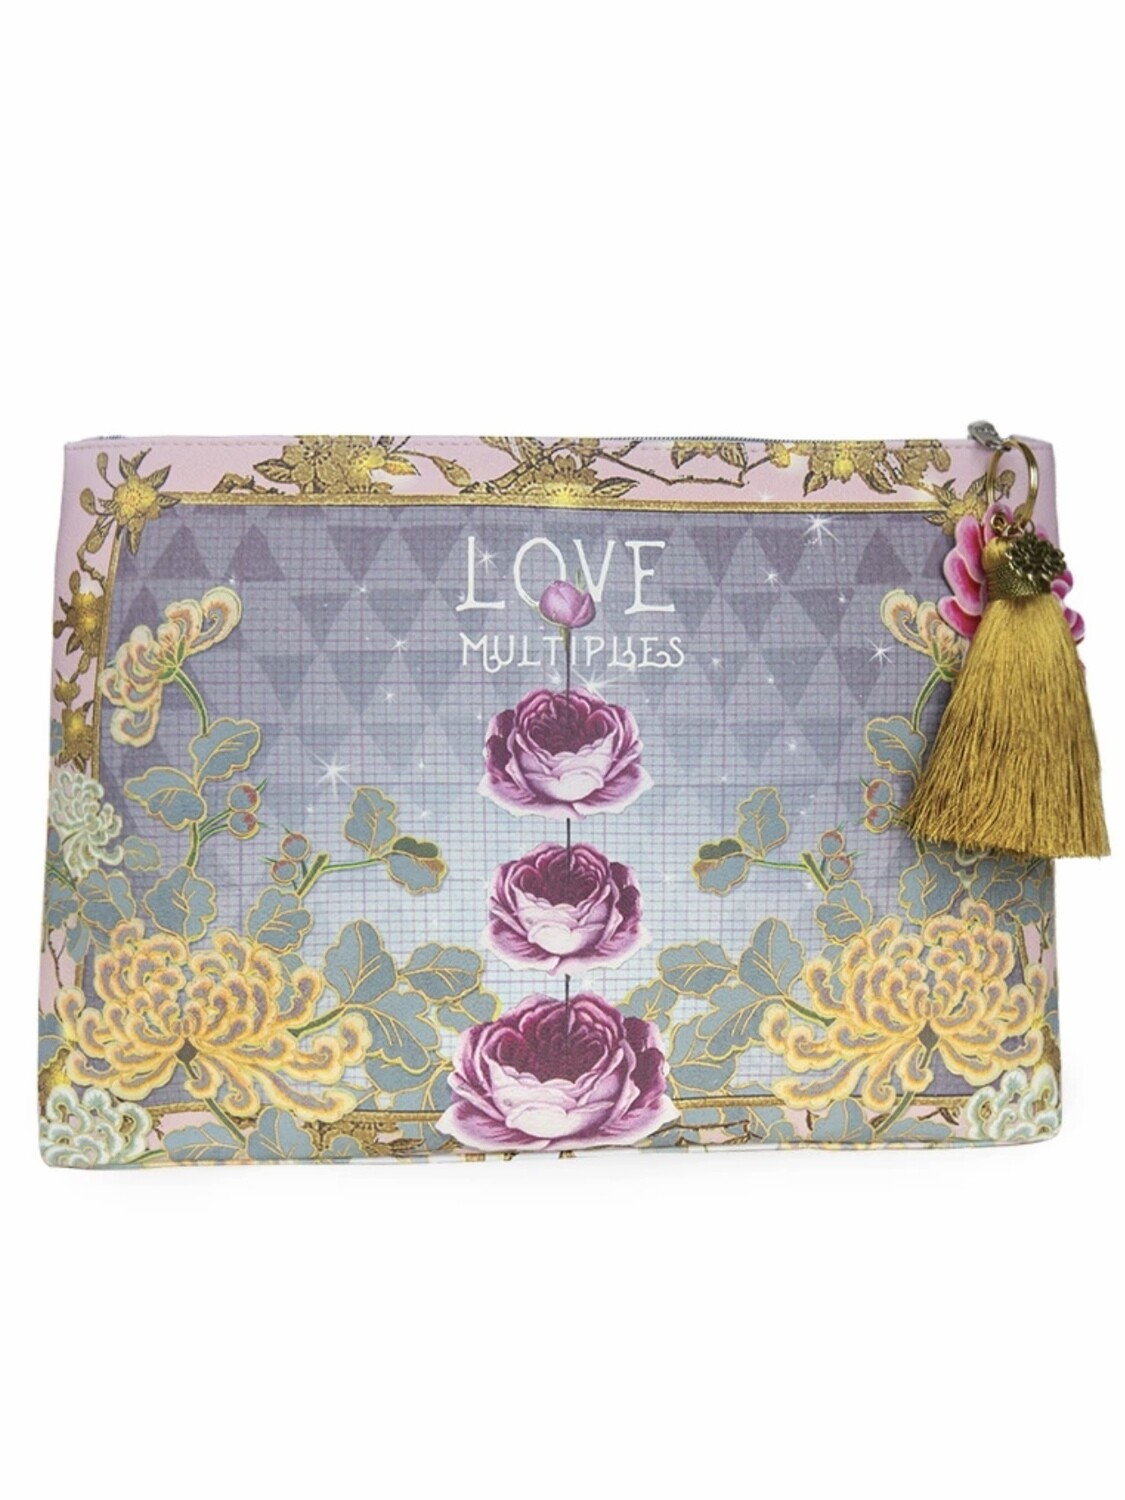 Love Multiplies Large Pouch - PAB16